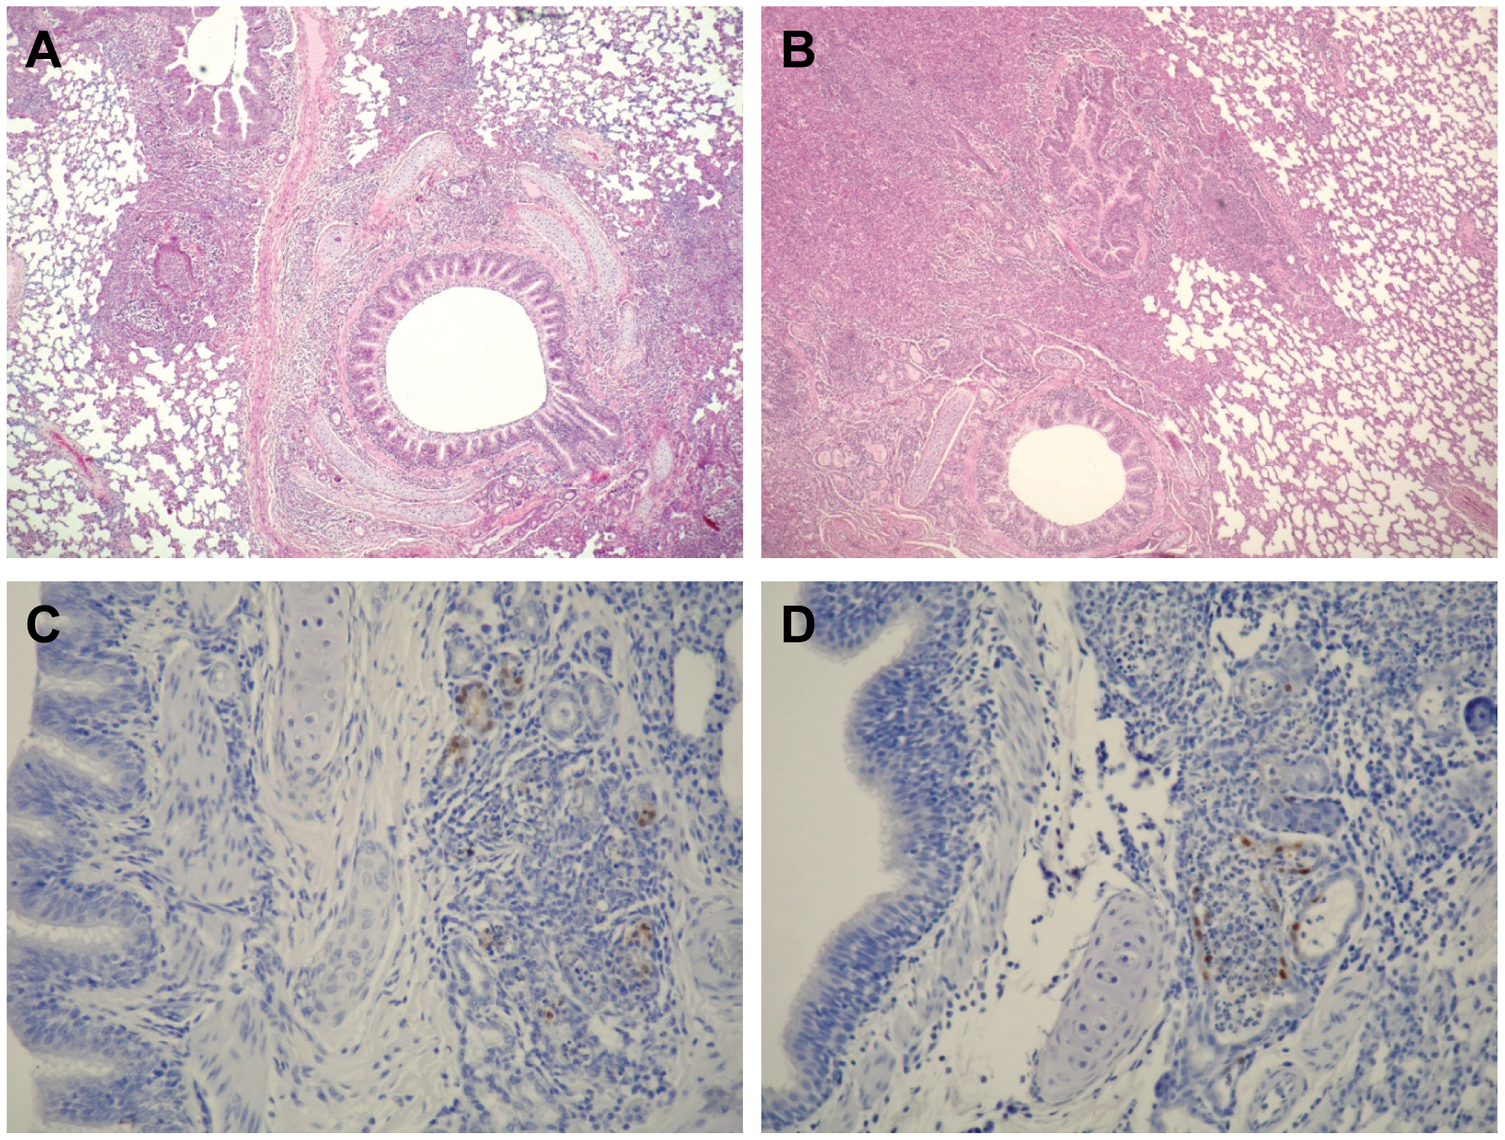 Pathological findings in the lungs of infected ferrets.